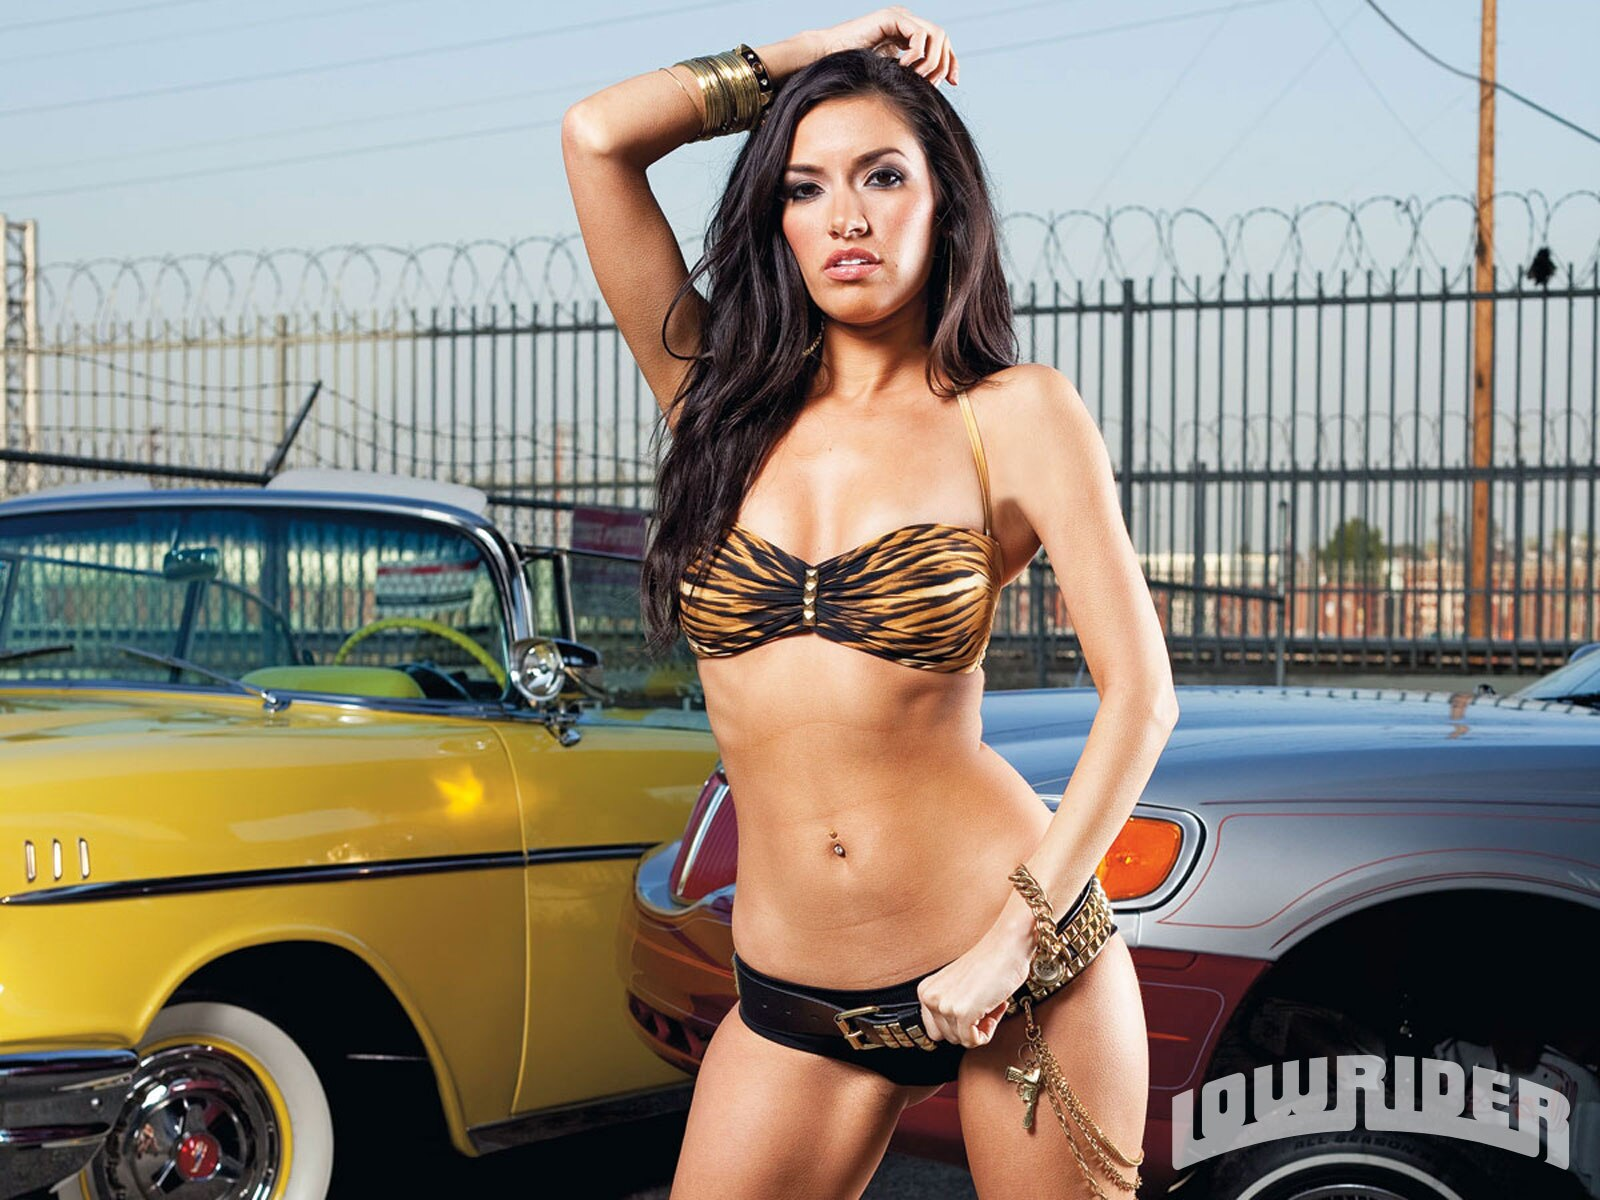 1107-lrms-02-hp-mercedes-terrell-lowrider-girls-model-